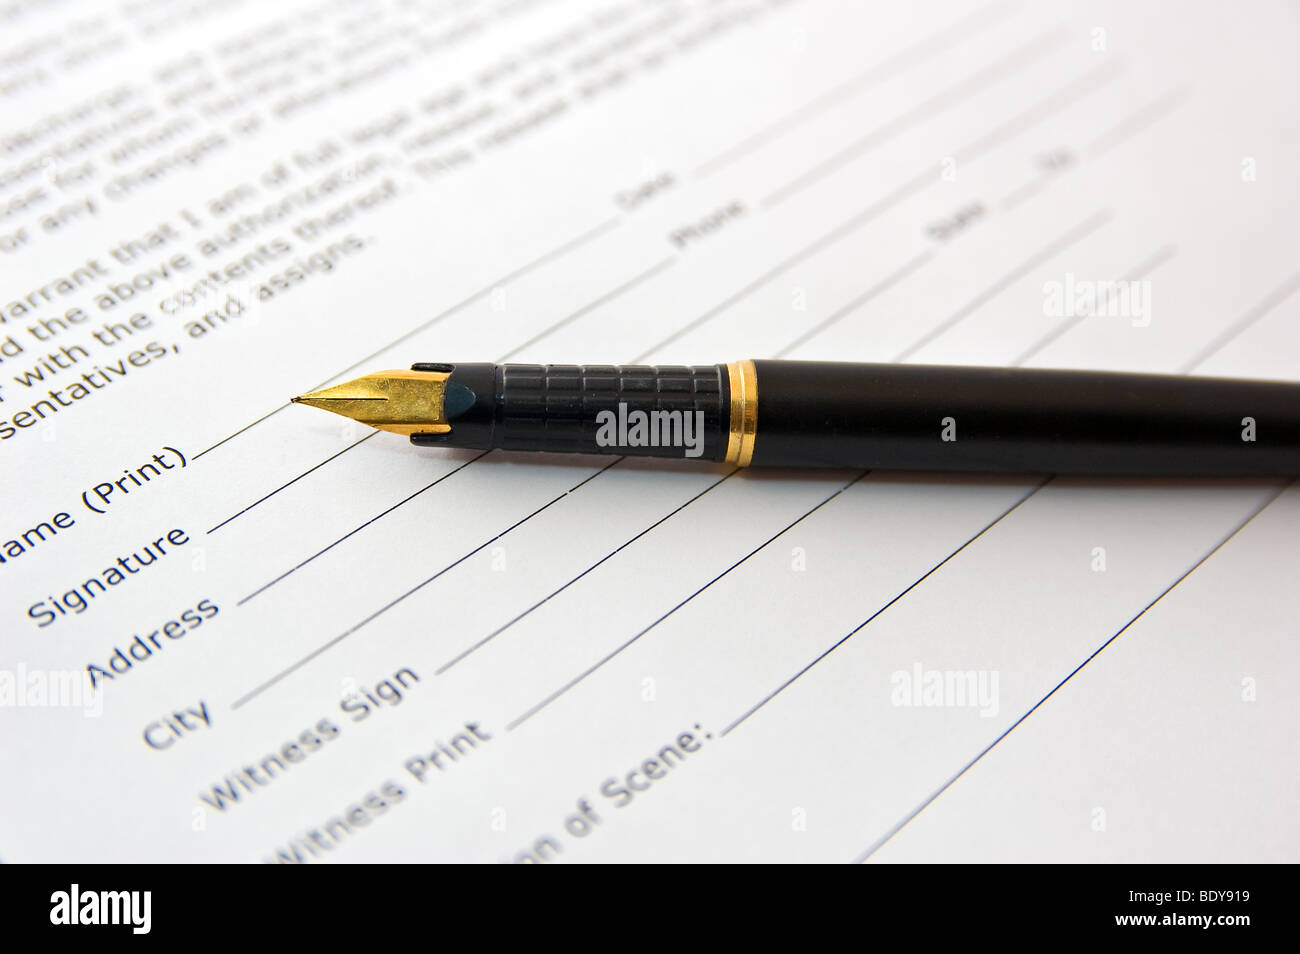 pen on agreement paper business concept - Stock Image